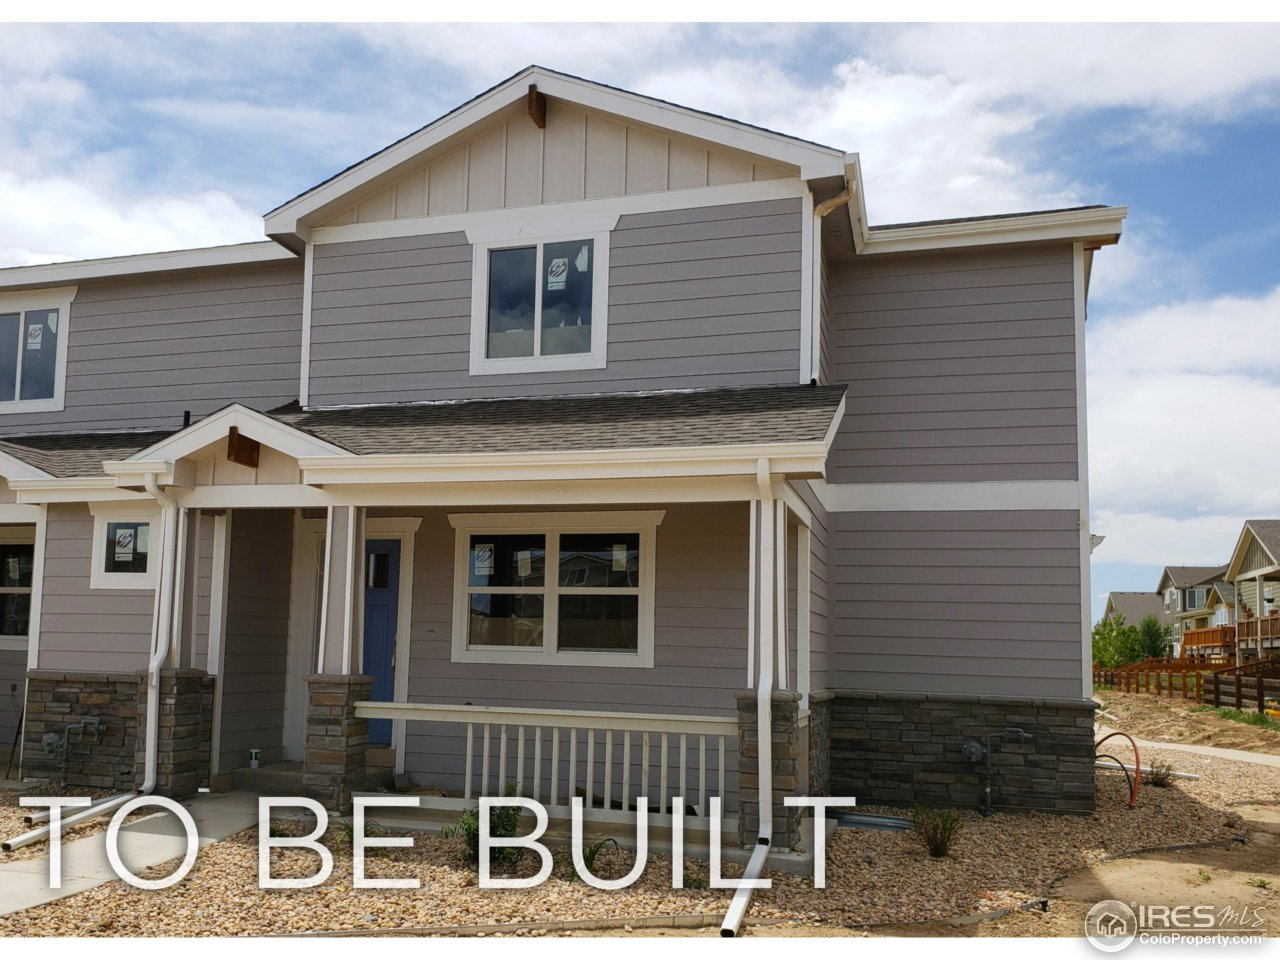 Glasco Park Townhomes is a luxury town house development in Wyndham Hill. Low Maintenance living at its finest!! Convenient to Boulder,Denver,and DIA. Granite countertops, tile/wood flooring, attached garage, unfinished basements ready for expansion, and much more! Many floor plans to choose from including main floor masters. Over $15,000 in upgrades already included. Look for Harmony Brokers Signs. Model is 6107 Kochia #107 open most days.Check the open house link for exact times.